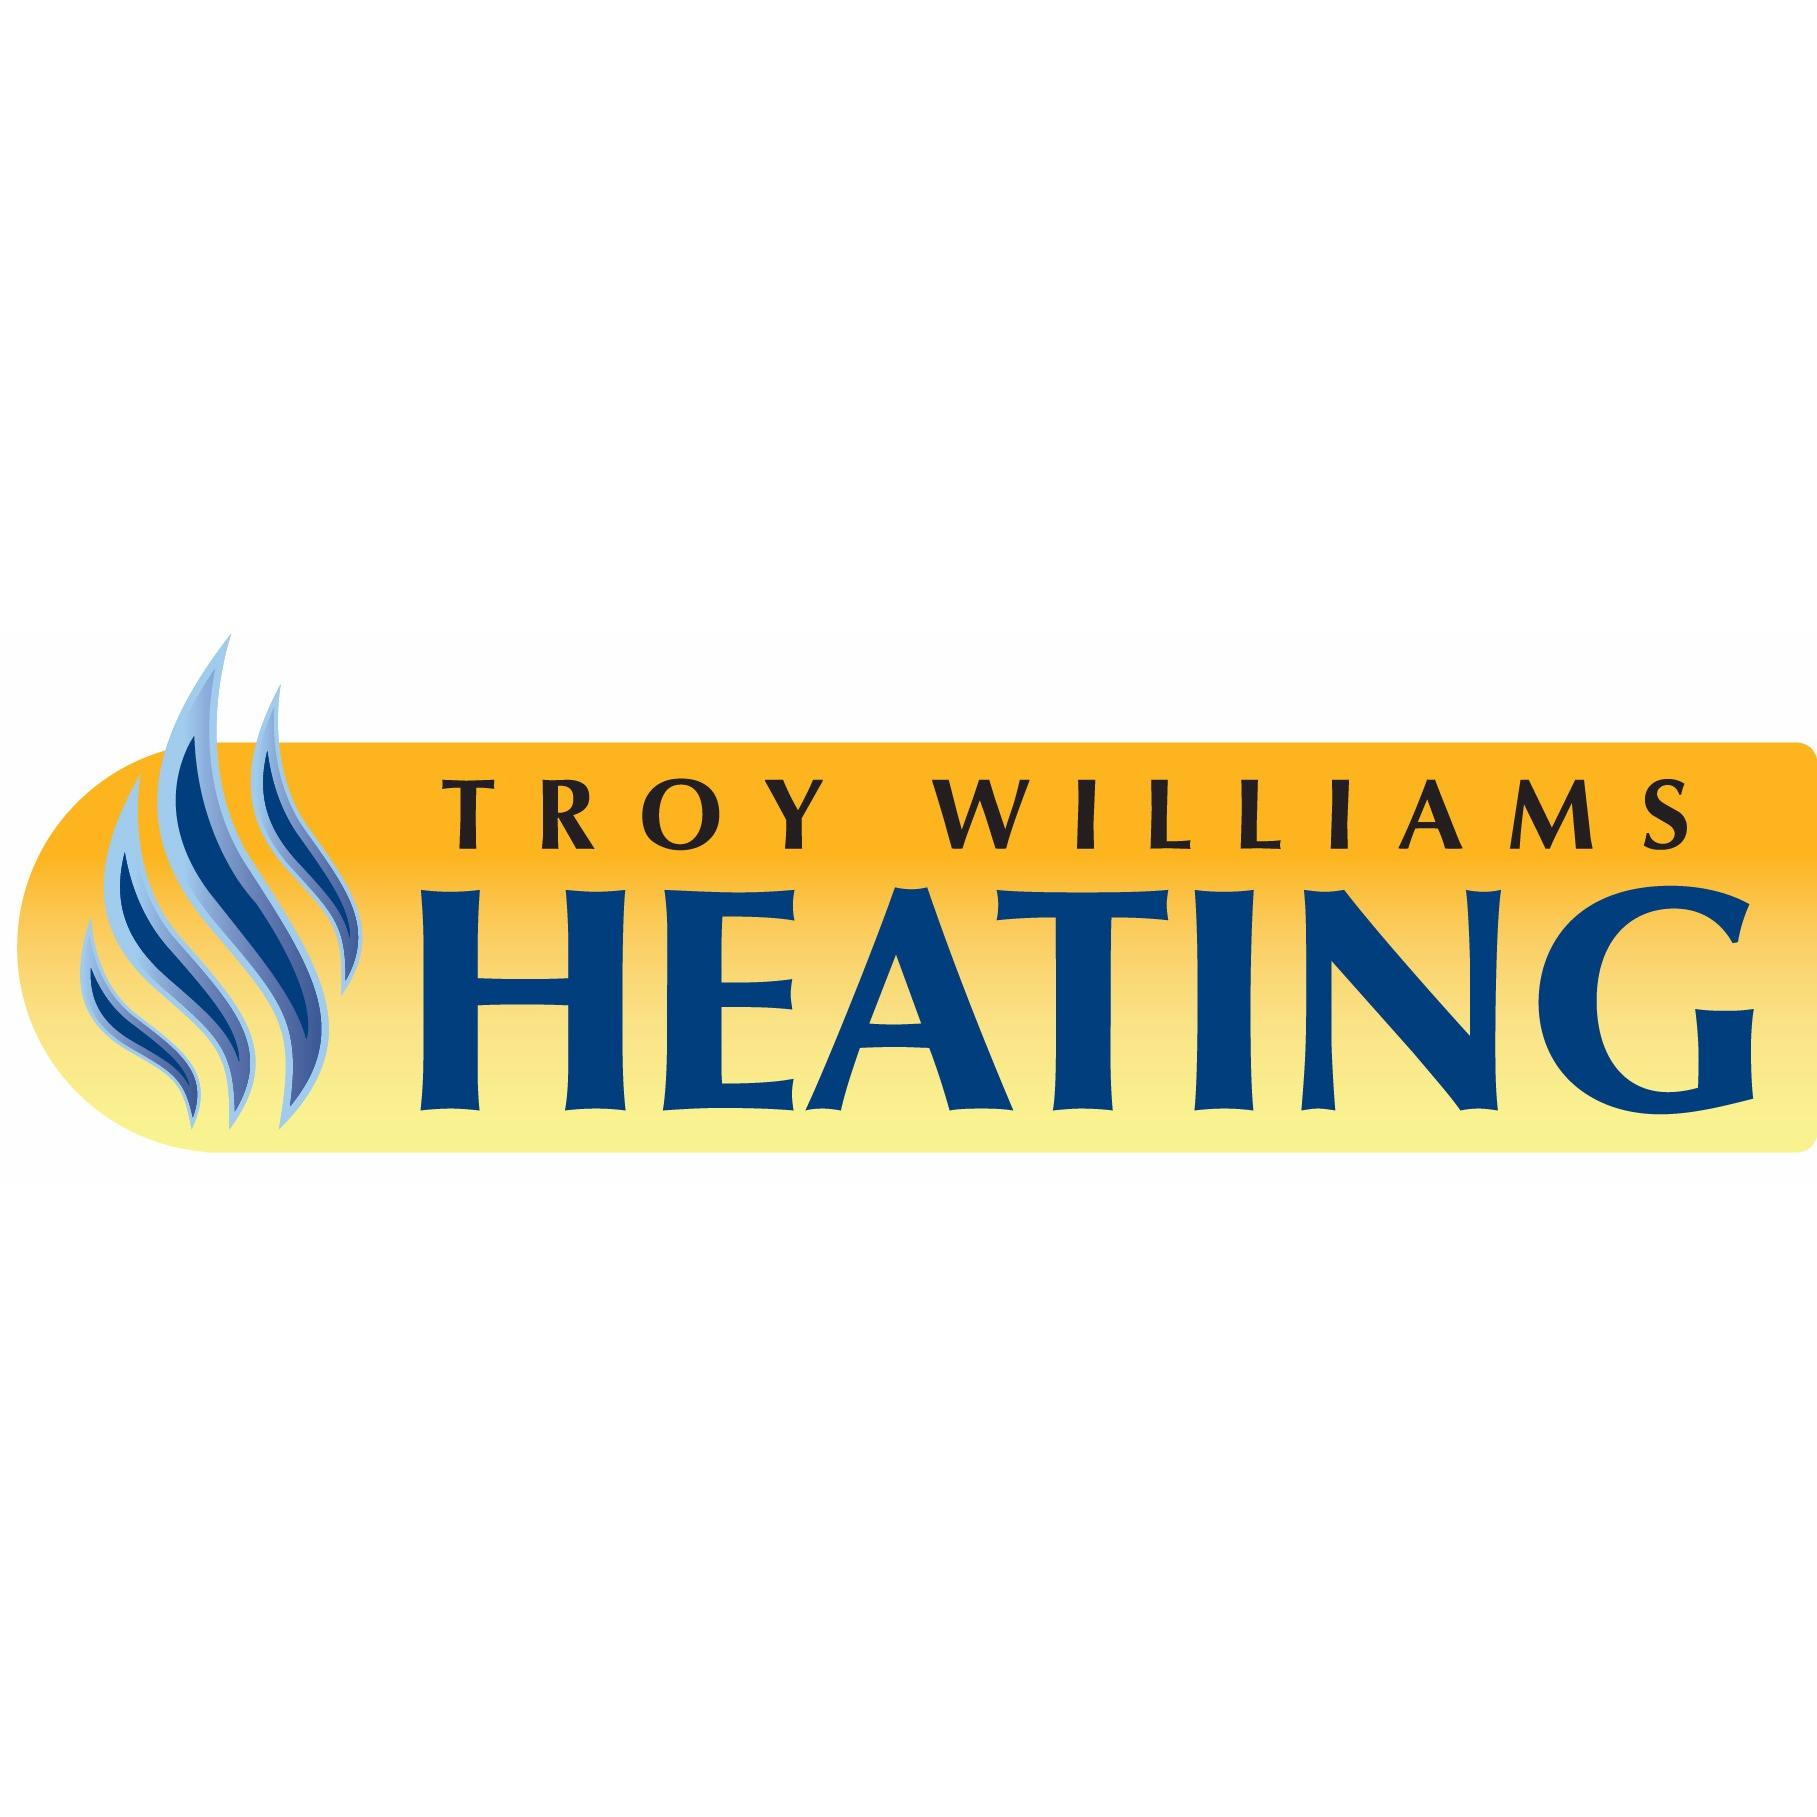 Troy Williams Heating